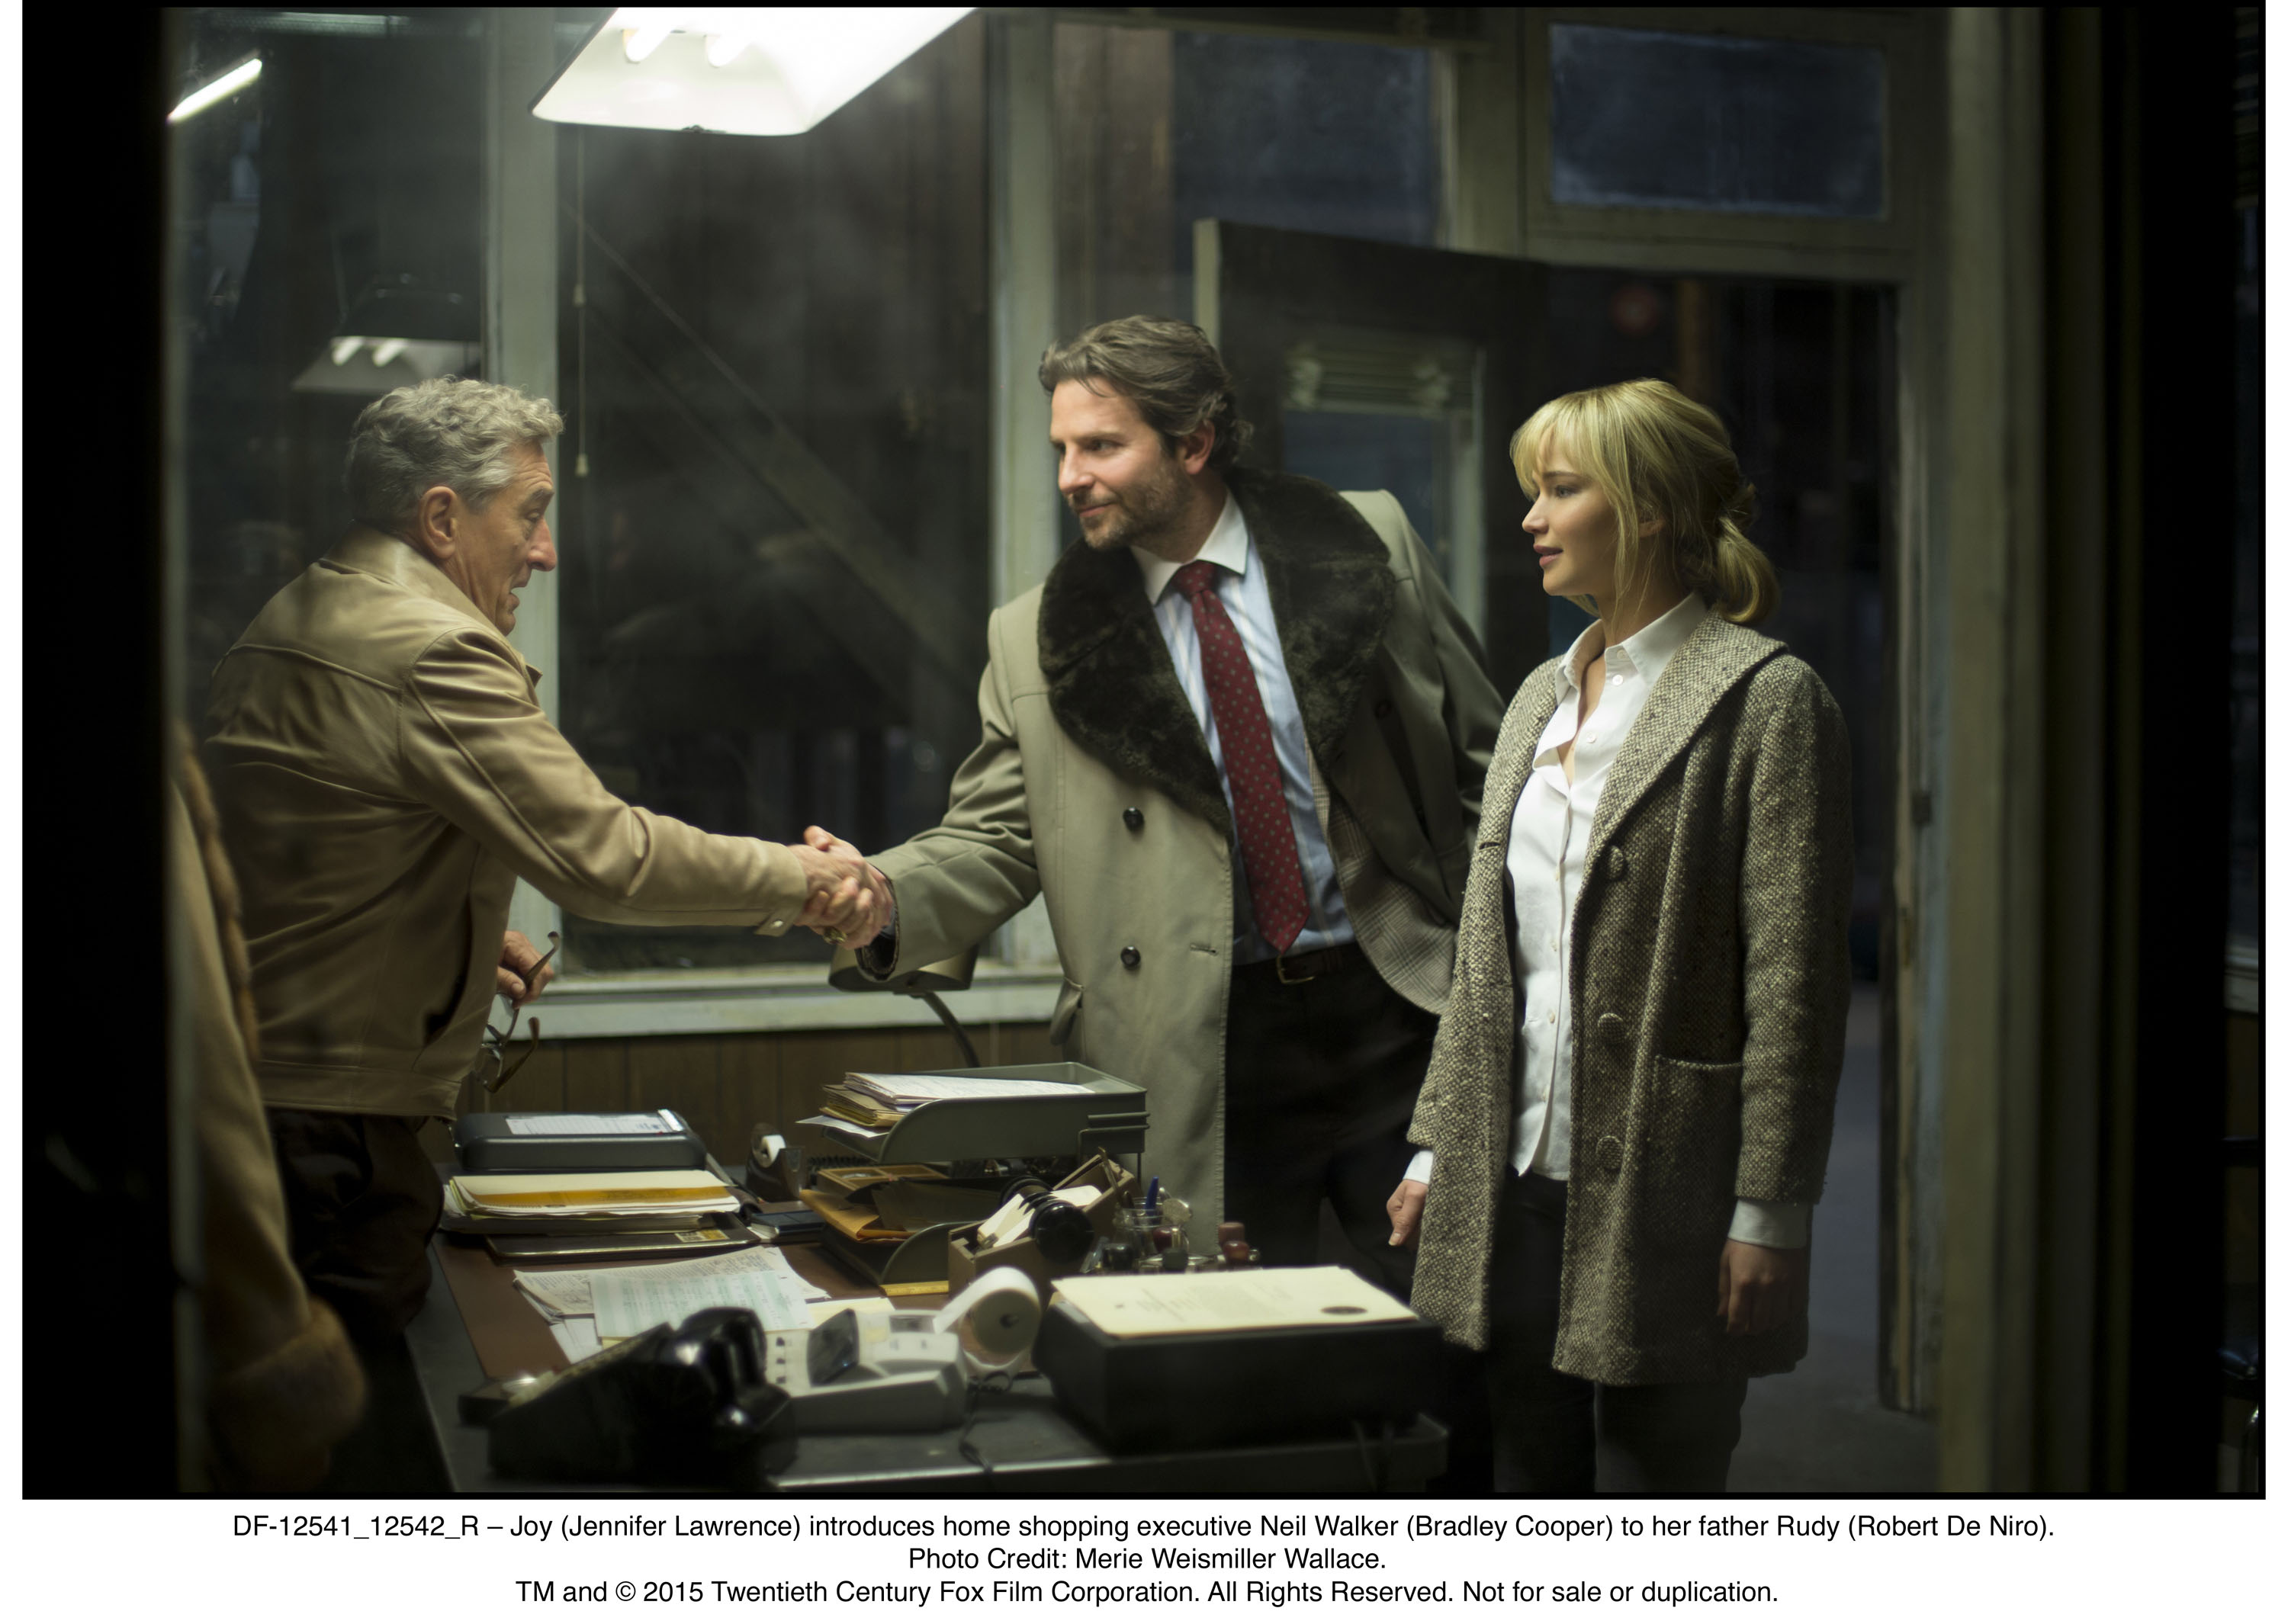 DF-12541_12542_R – Joy (Jennifer Lawrence) introduces home shopping executive Neil Walker (Bradley Cooper) to her father Rudy (Robert De Niro).